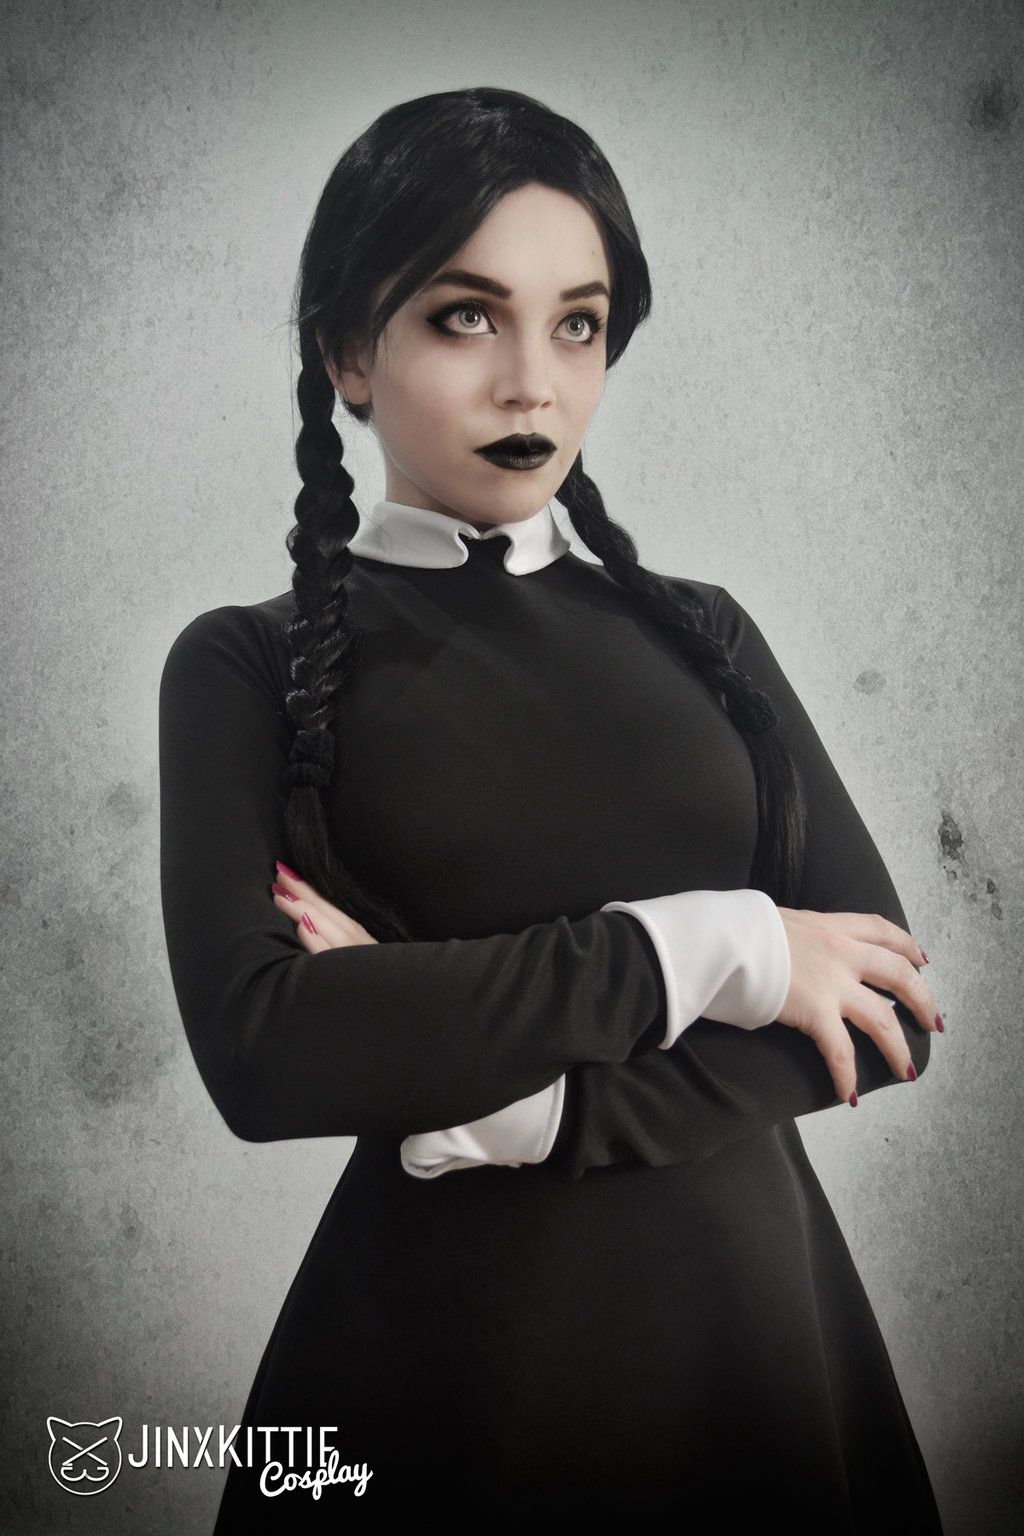 How to Cosplay As Wednesday Addams